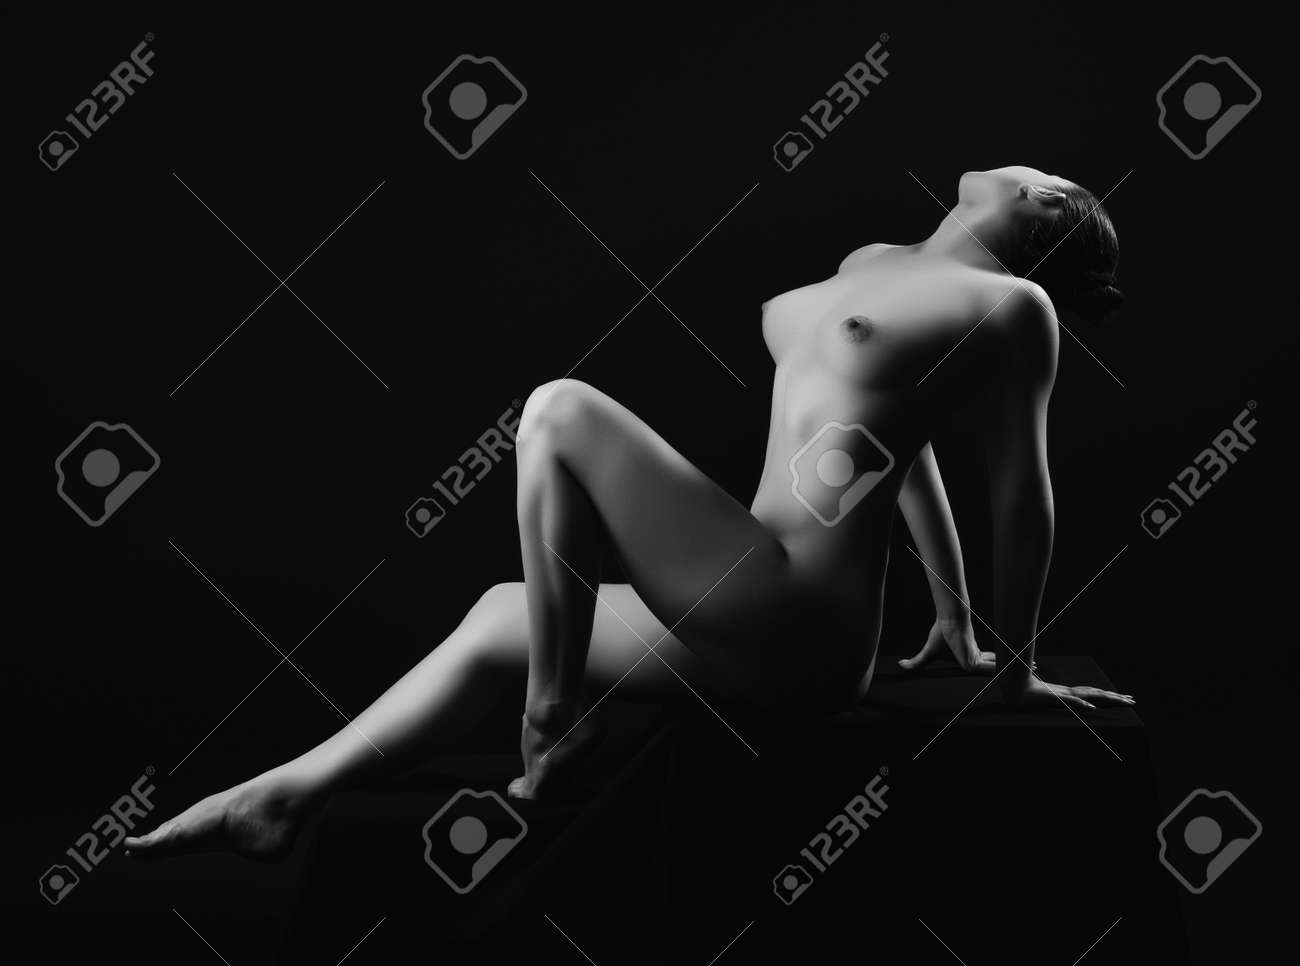 Nude black and white with color